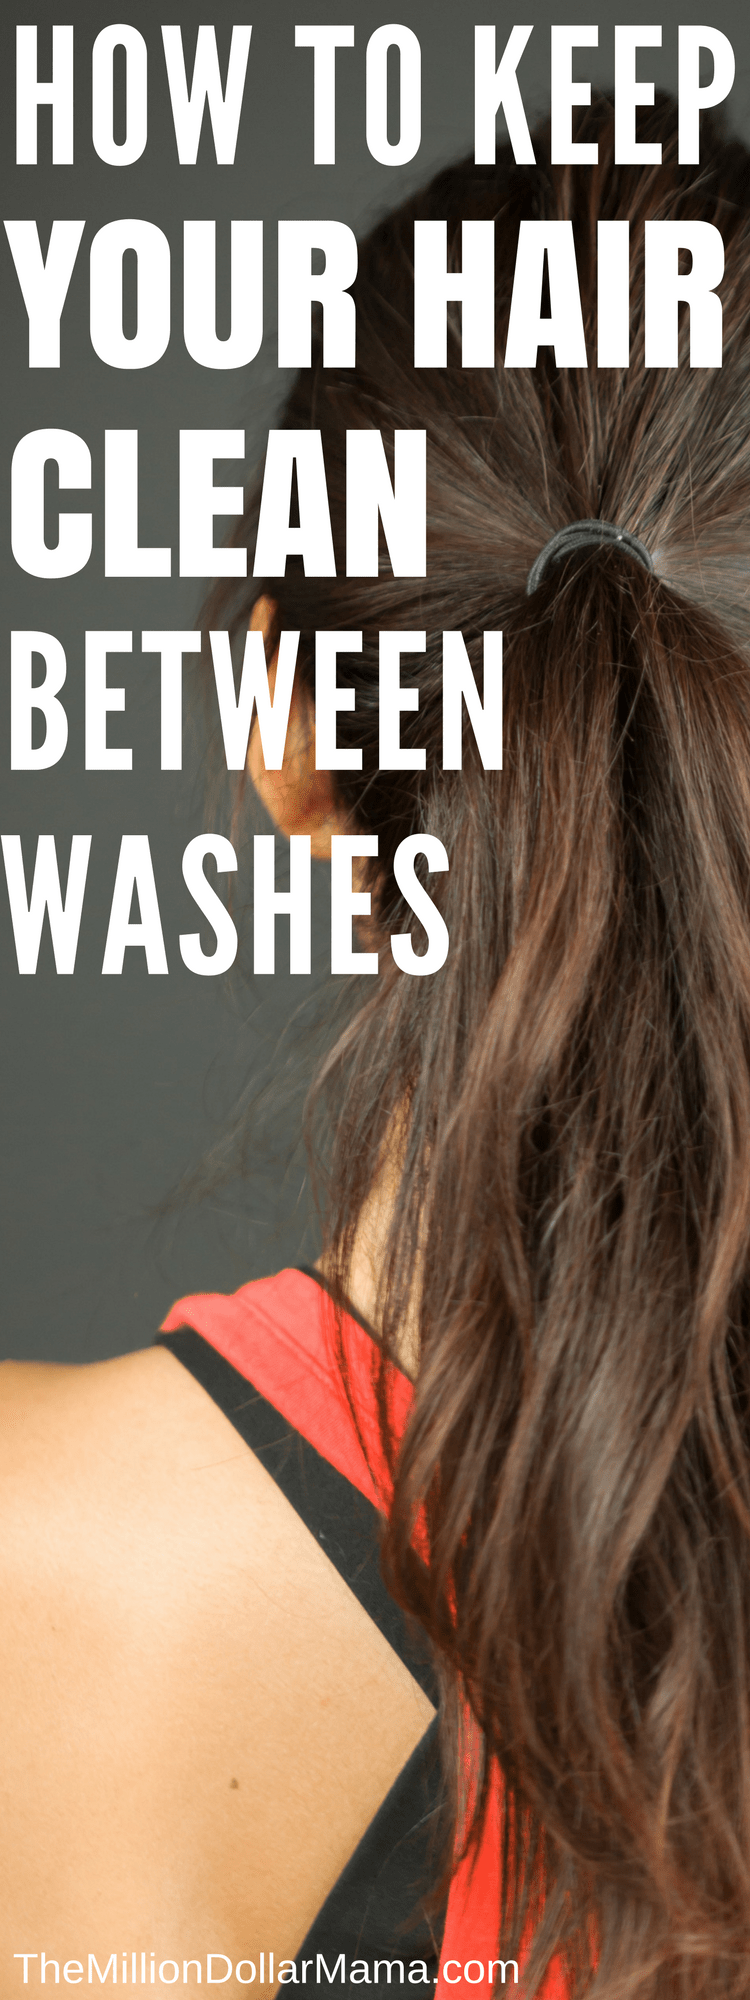 Some great tips on how to keep your hair clean for longer, especially when you workout everyday and don't have time to wash it.